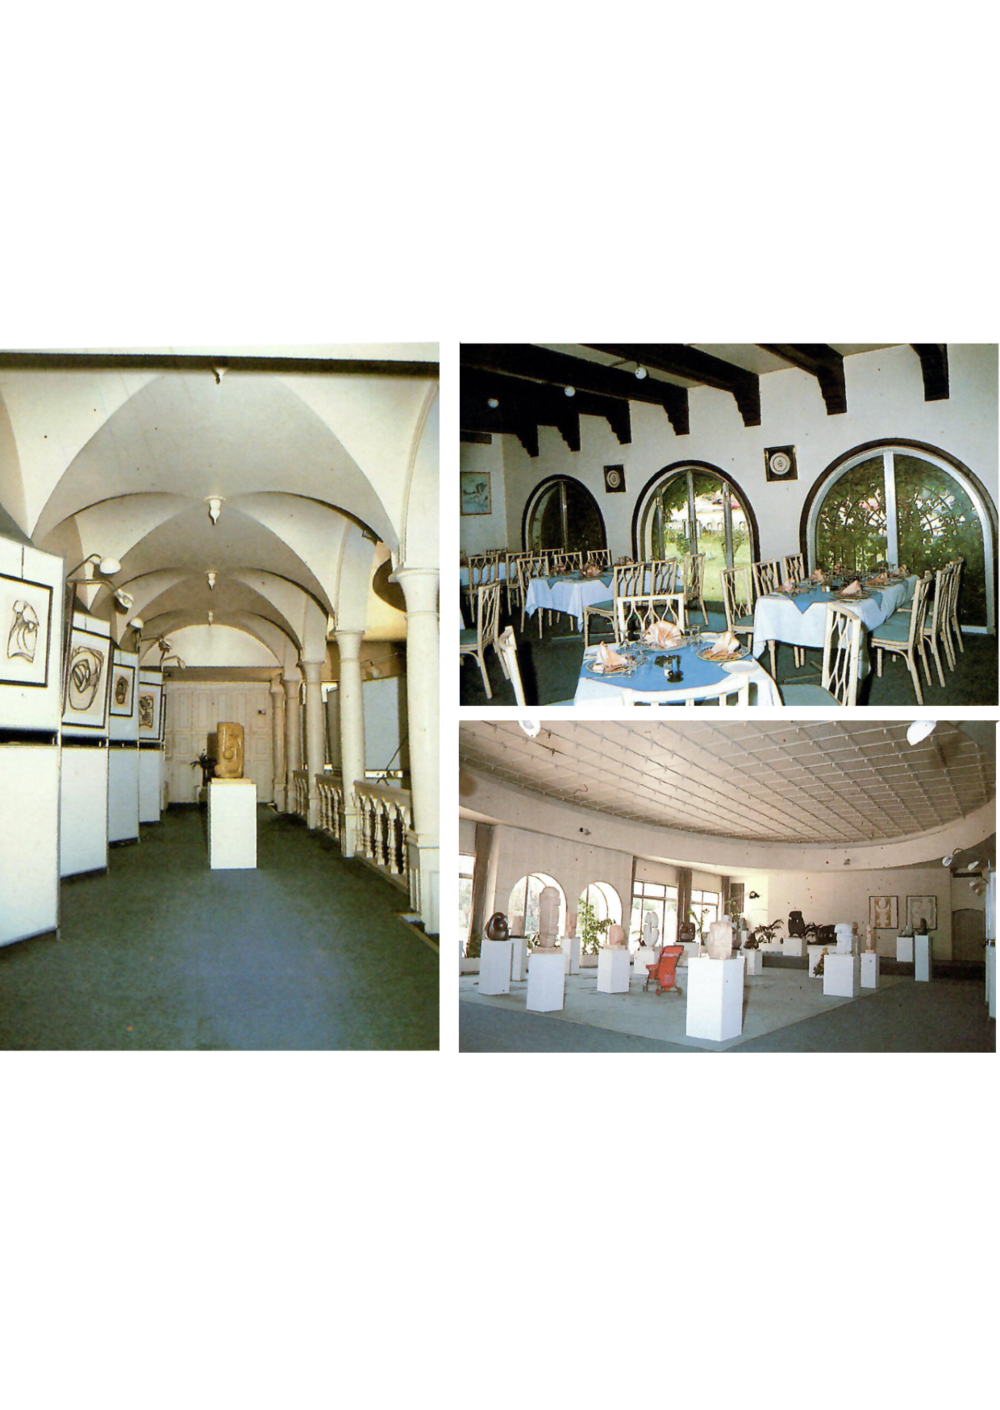 Interior photos of the building. .صور لداخل البناء